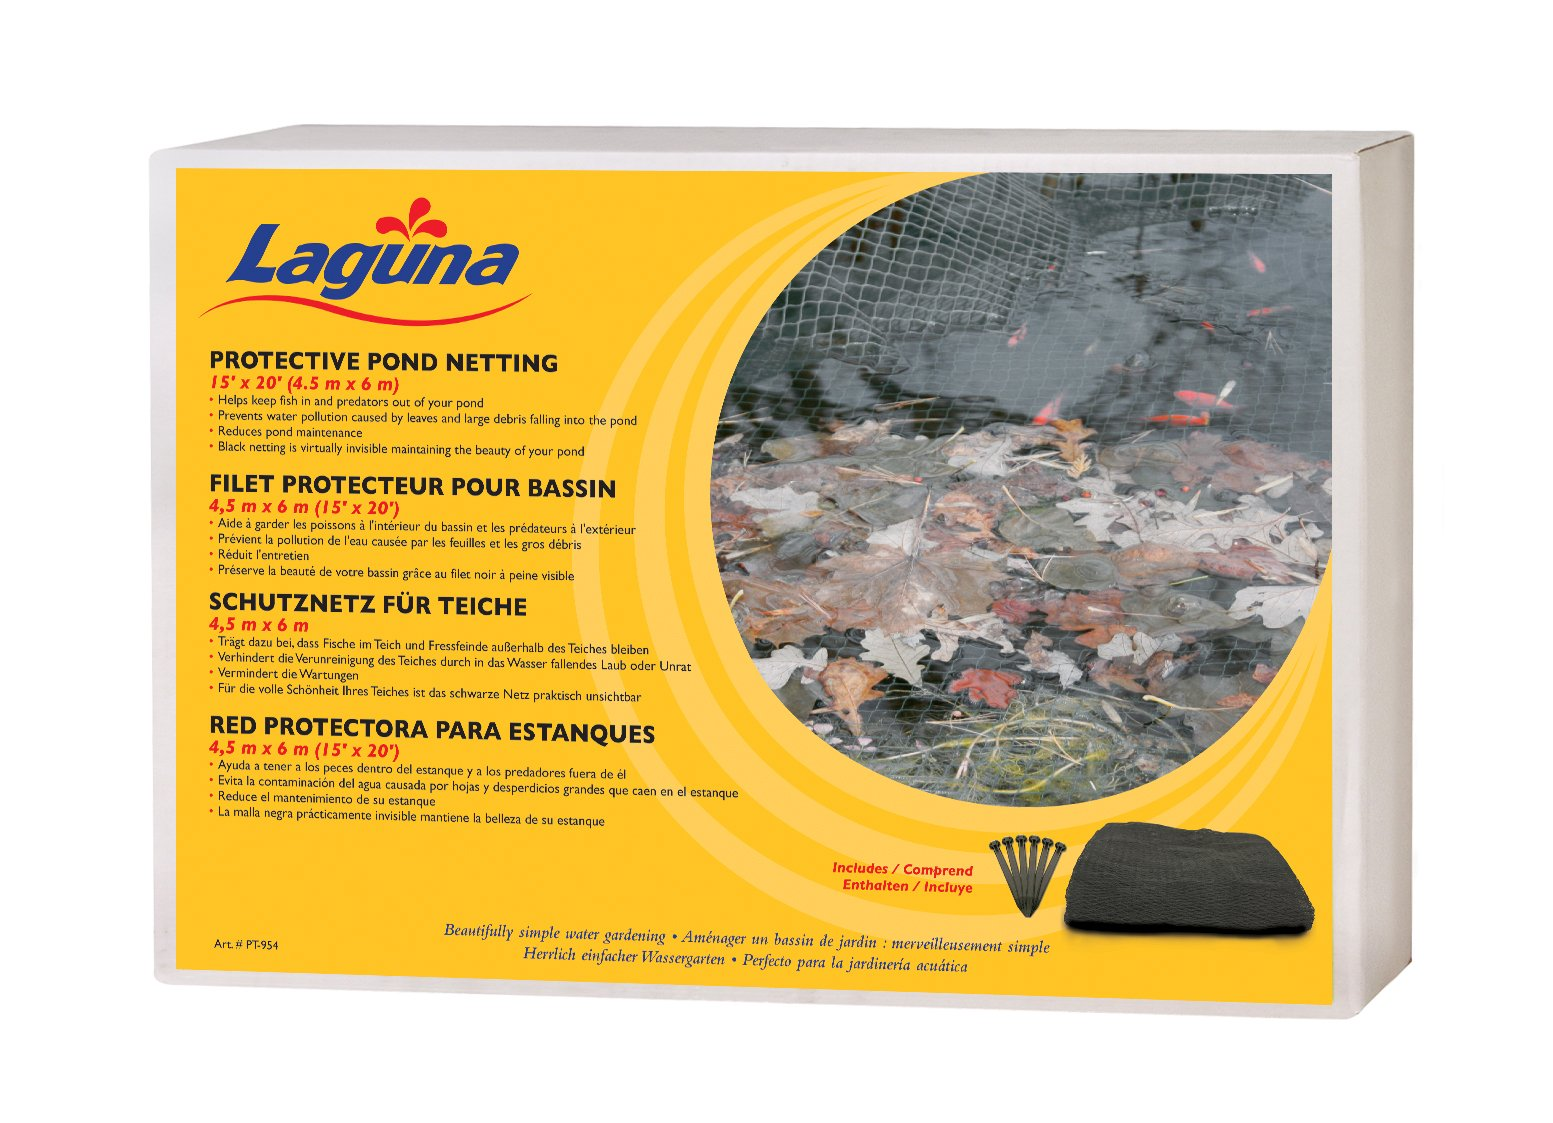 Laguna 15 Feet x 20 Feet Pond Netting with Placement Stakes, Black by Laguna